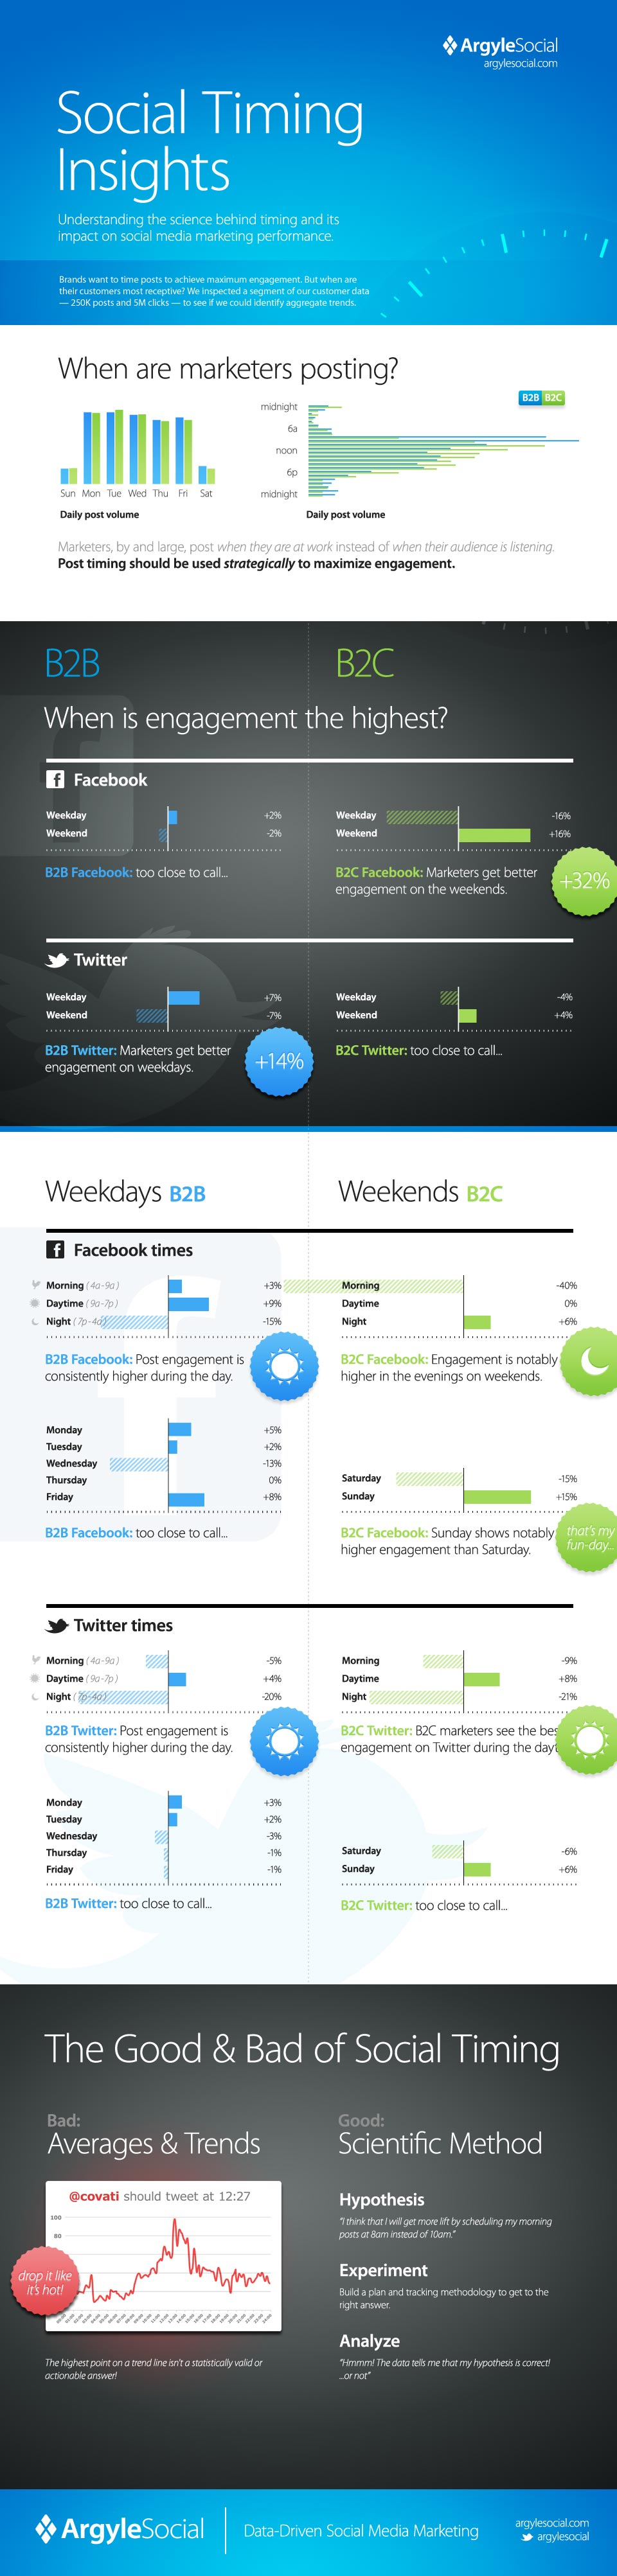 » Social Timing Insights Infographic | Argyle Social is on a mission to help marketers drive meaningful business outcomes through social media marketing. Hundreds of small- and mid-sized businesses rely on our platform to power marketing campaigns on Twitter, Facebook, and LinkedIn.